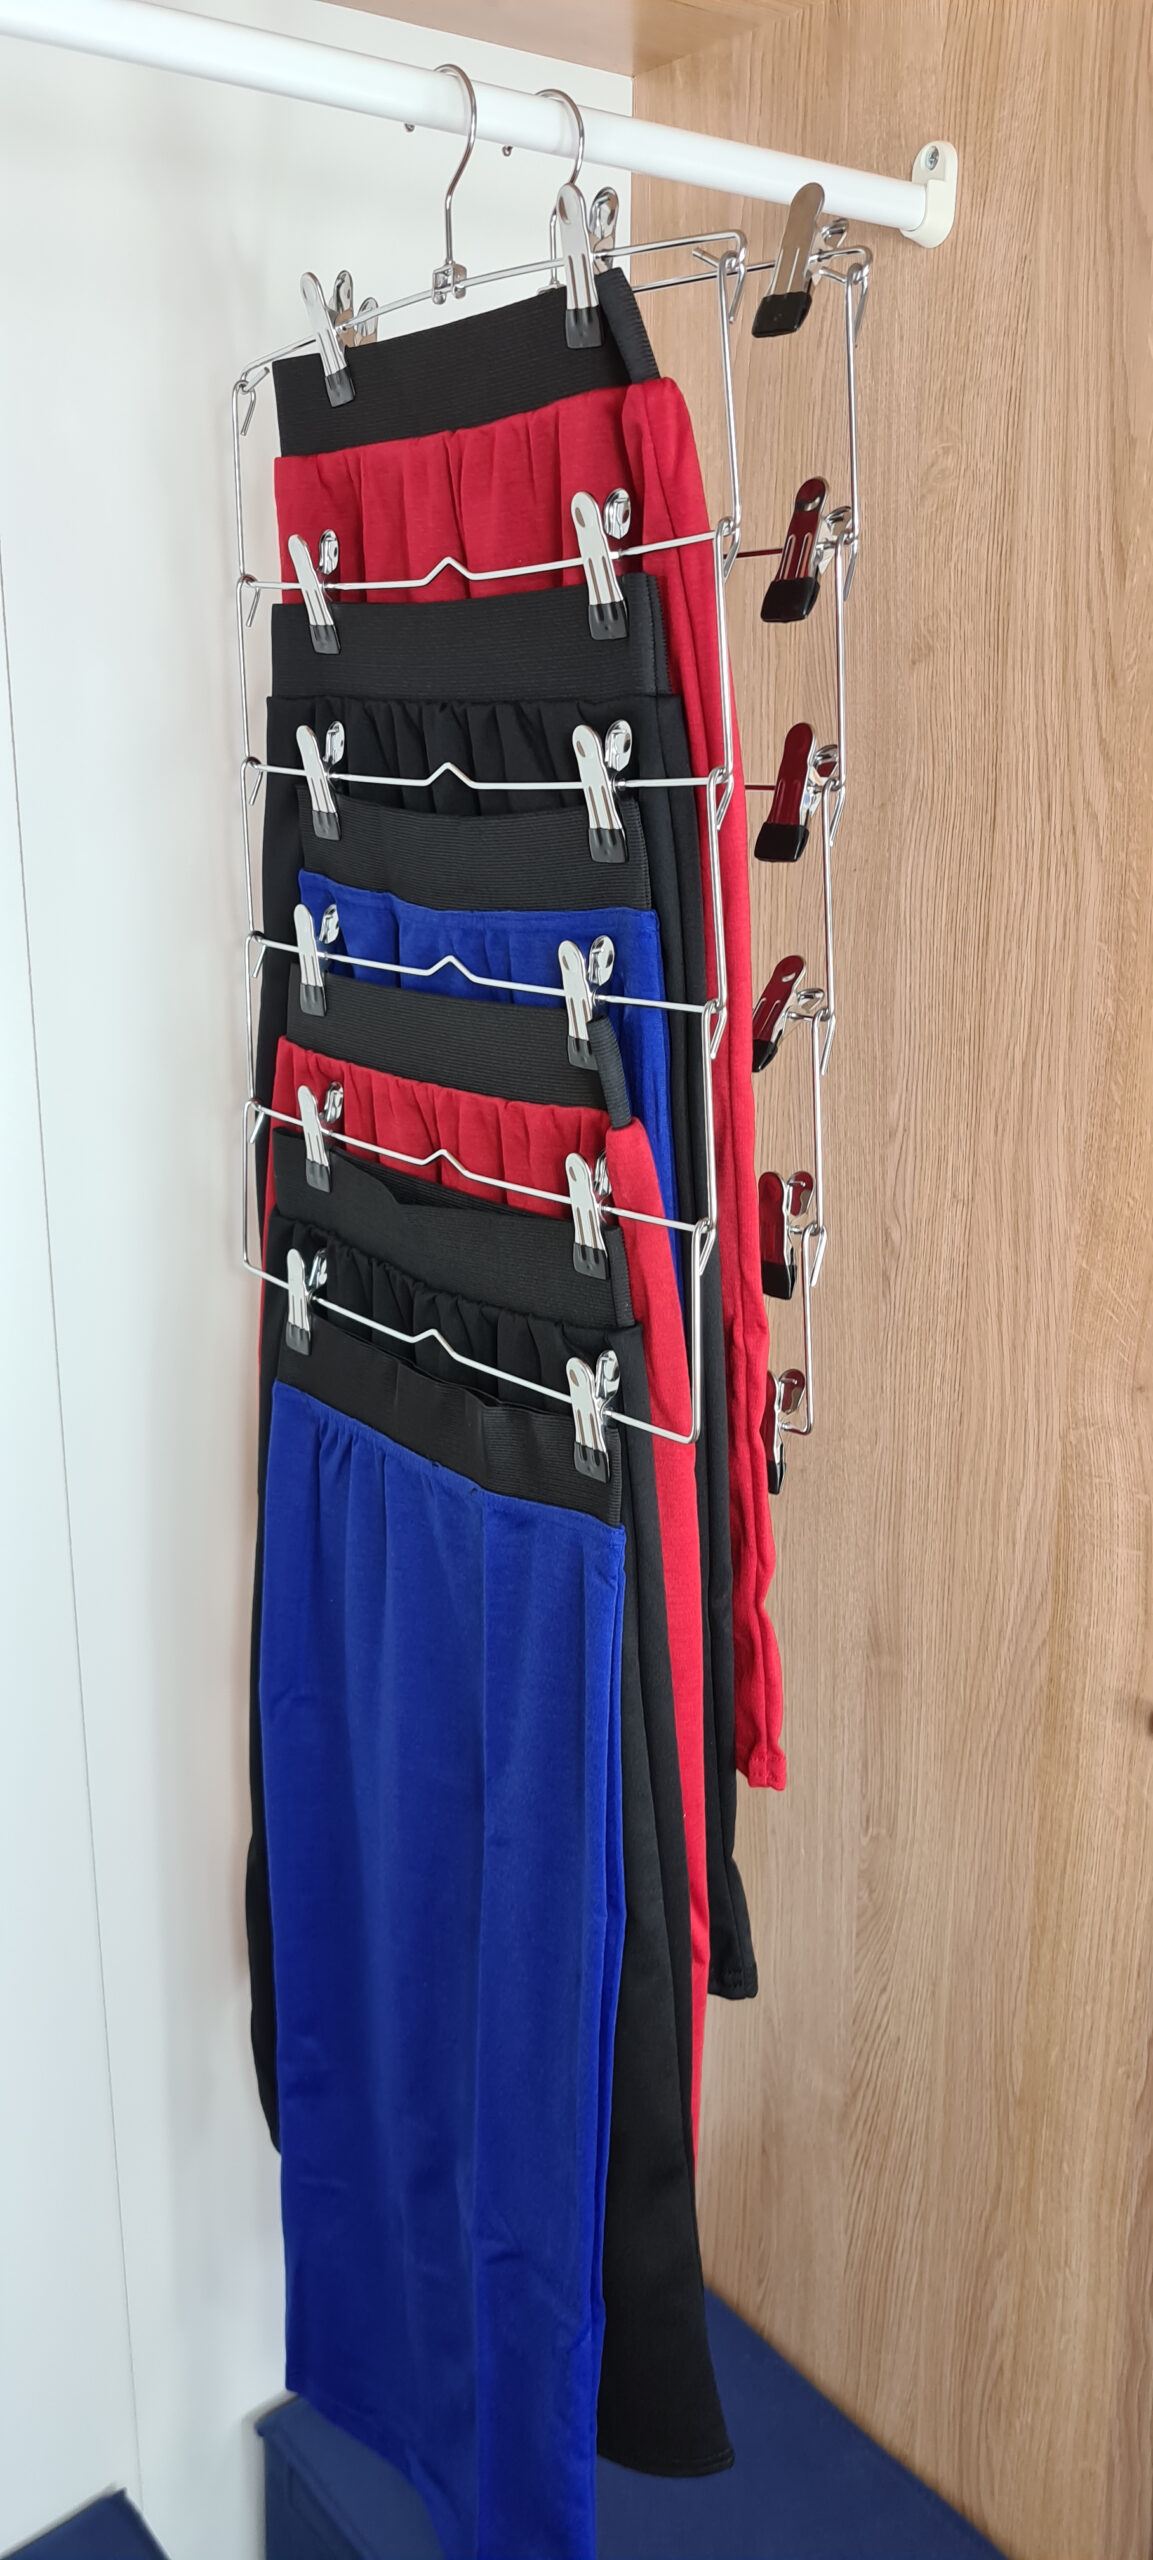 Space Saving Metal Multi Skirt Hangers, 2 Pack, 6 Skirts Each Hanger